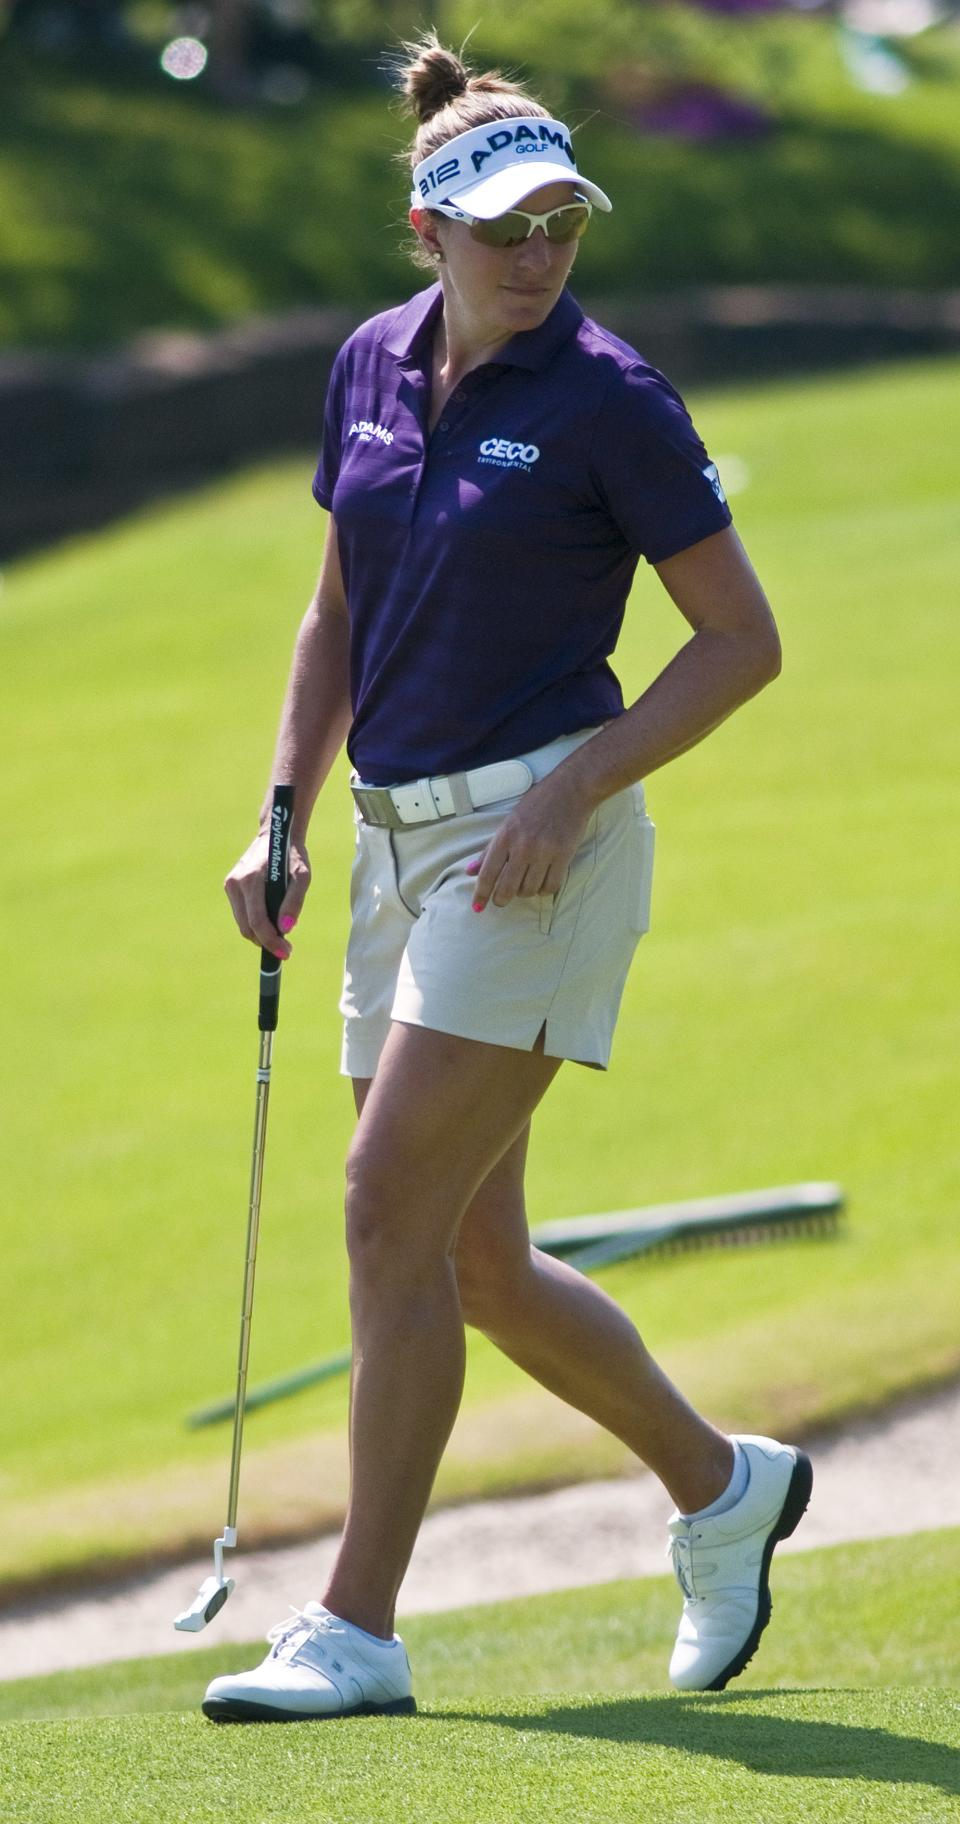 Brittany Lang surveys the 15th green before putting in the second round of the LPGA NW Arkansas Championship golf tournament in Rogers, Ark., Saturday, June 30, 2012. (AP Photo/April L. Brown)